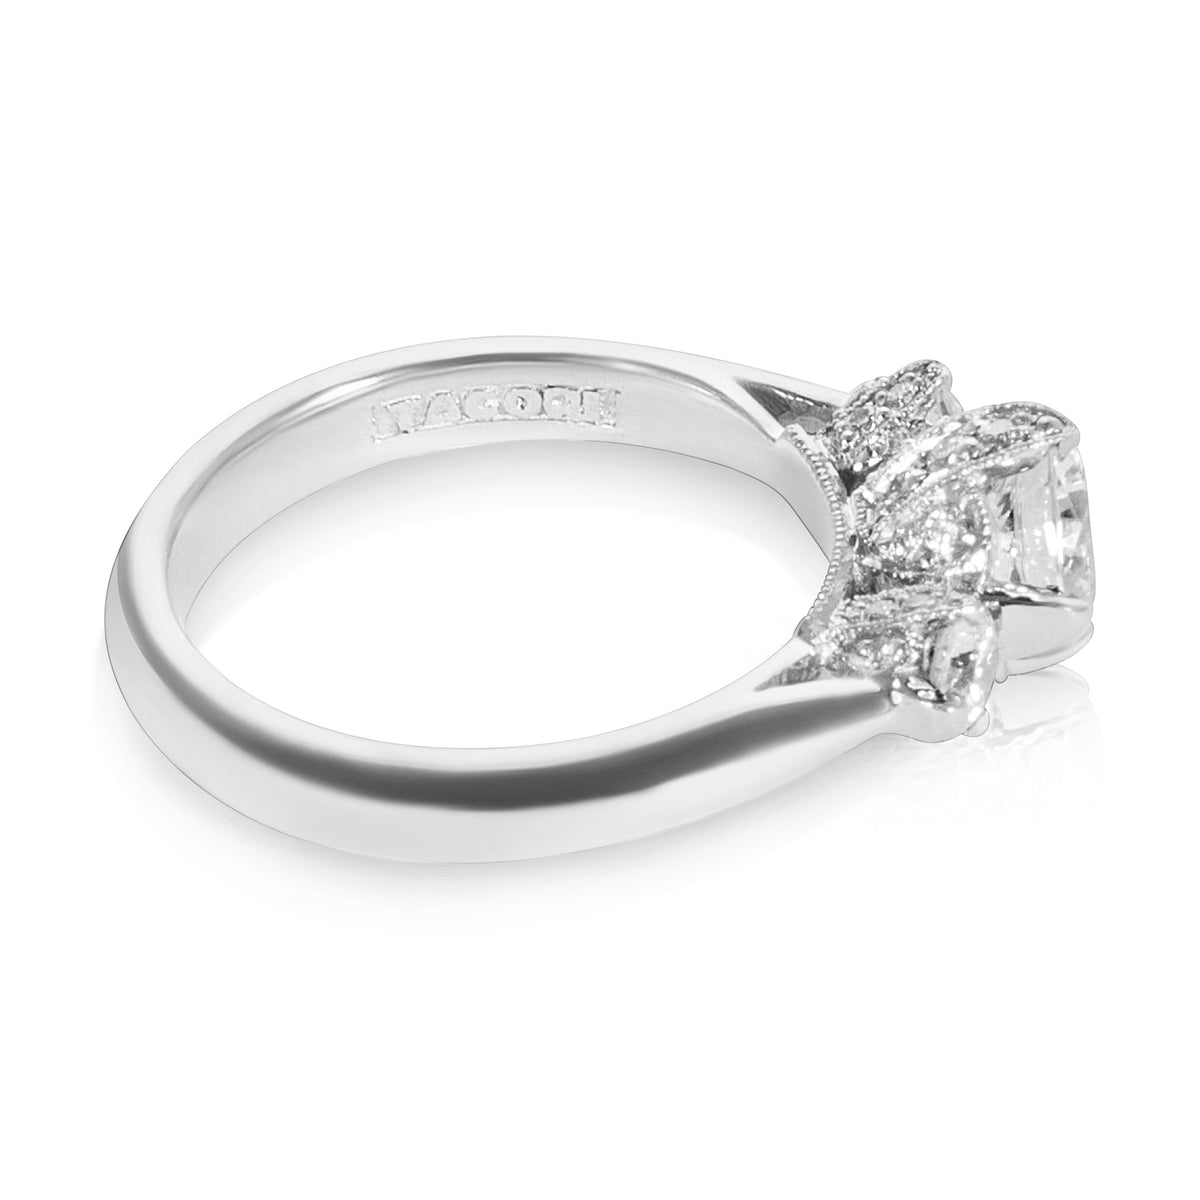 BRAND NEW Tacori 3-Stone Engagement Ring Setting in Platinum (1/2 CTW) HT 2314